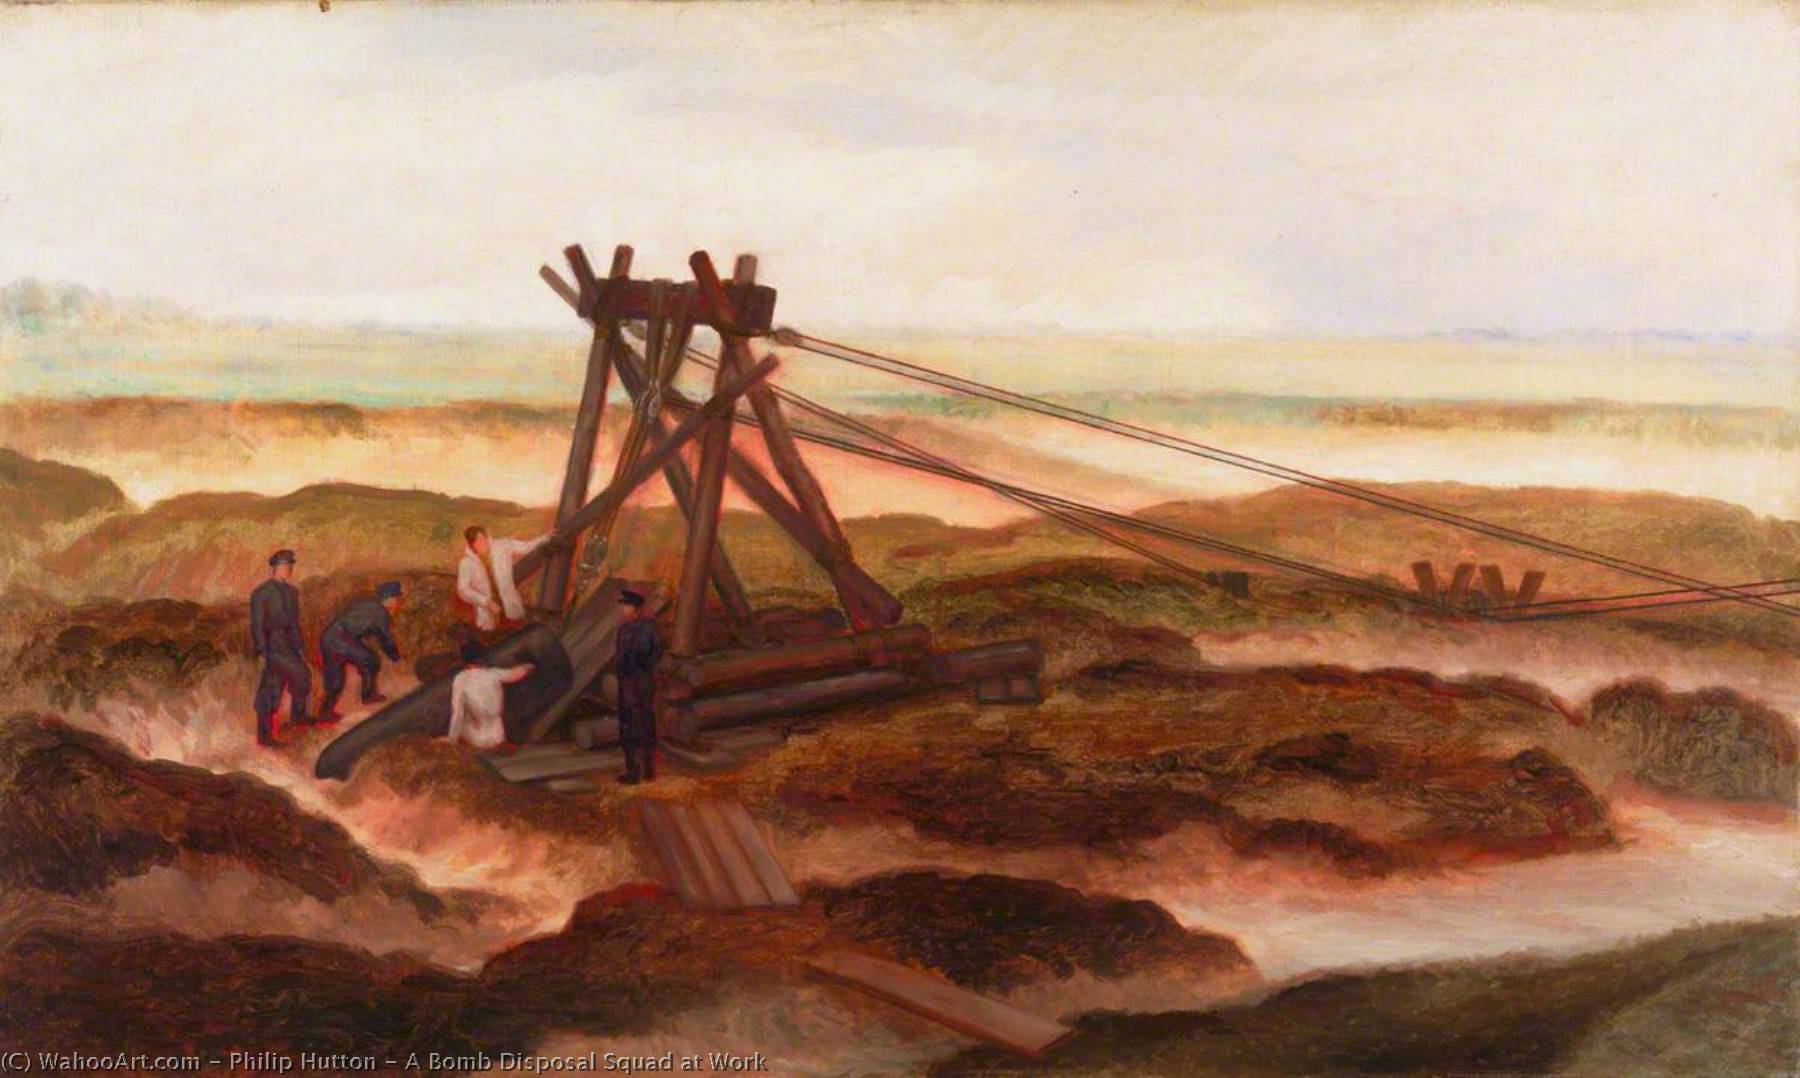 A Bomb Disposal Squad at Work, 1945 by Philip Hutton | Paintings Reproductions Philip Hutton | WahooArt.com